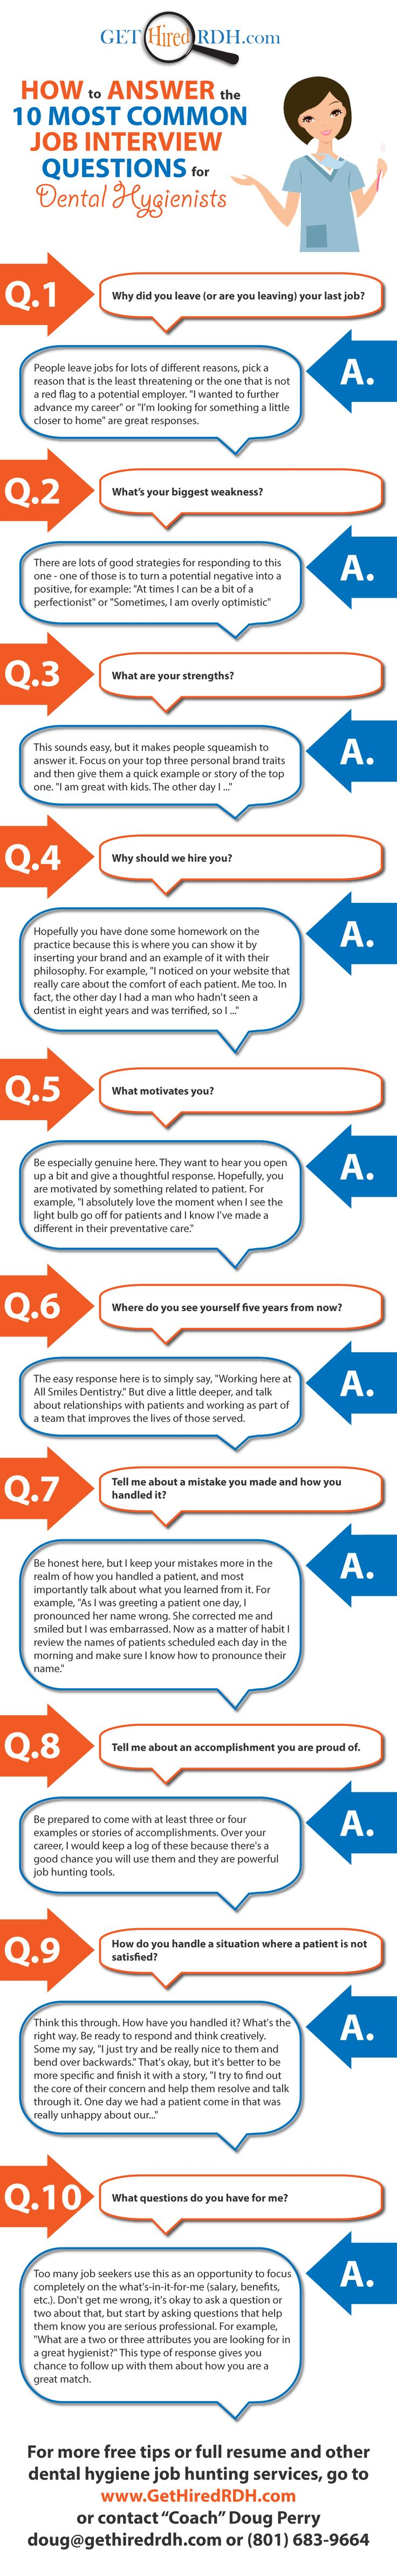 How to Answer the 10 Most Common Interview Questions for Dental Hygienists Get more at GetHiredRDH.com